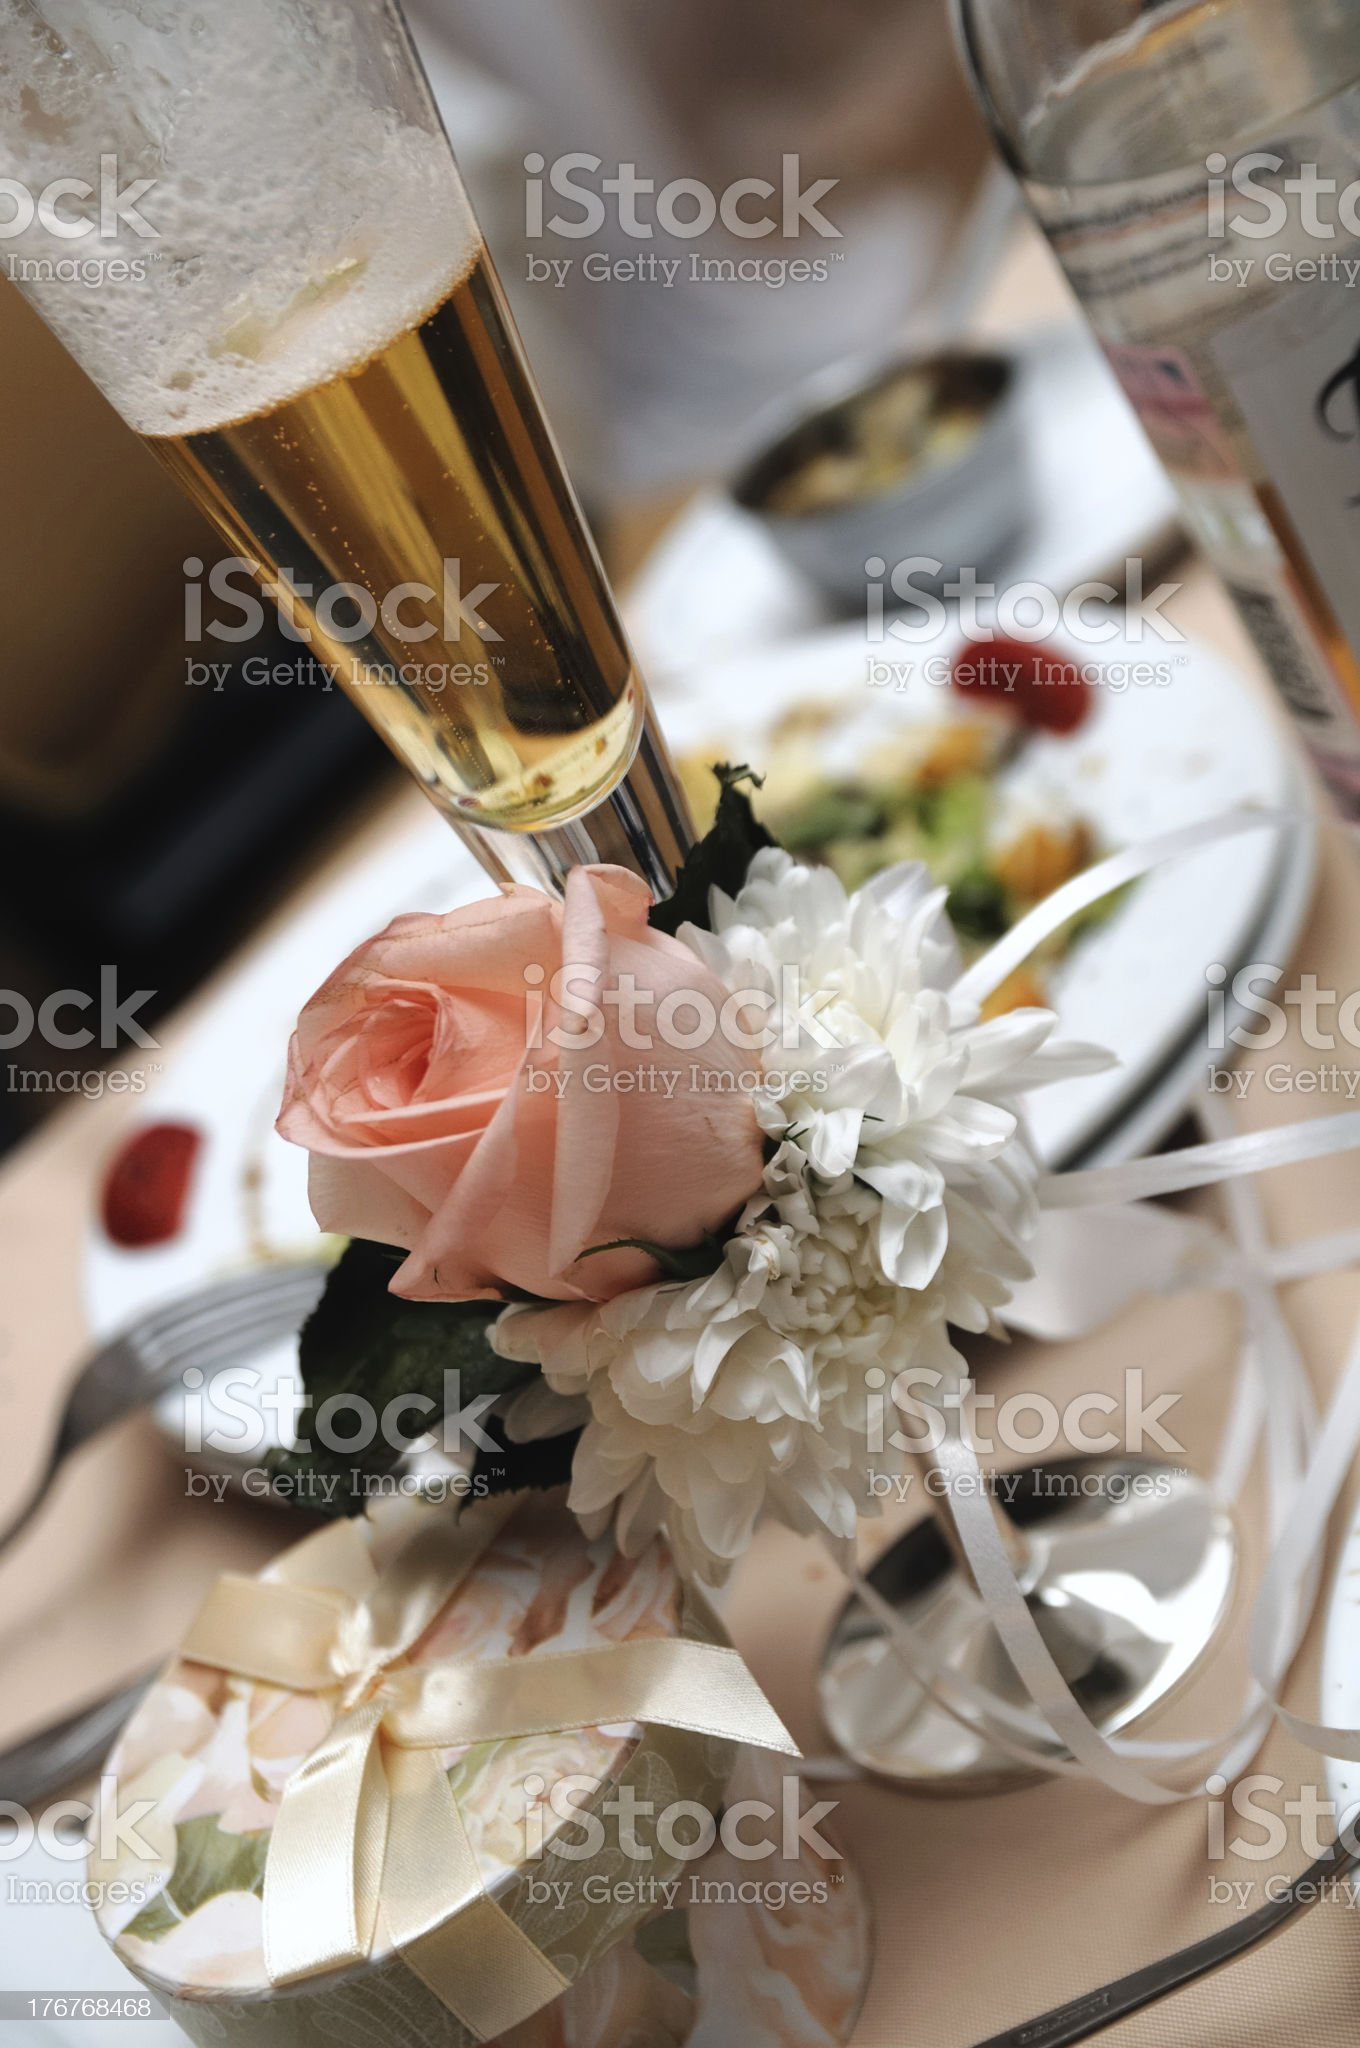 rose on glass royalty-free stock photo